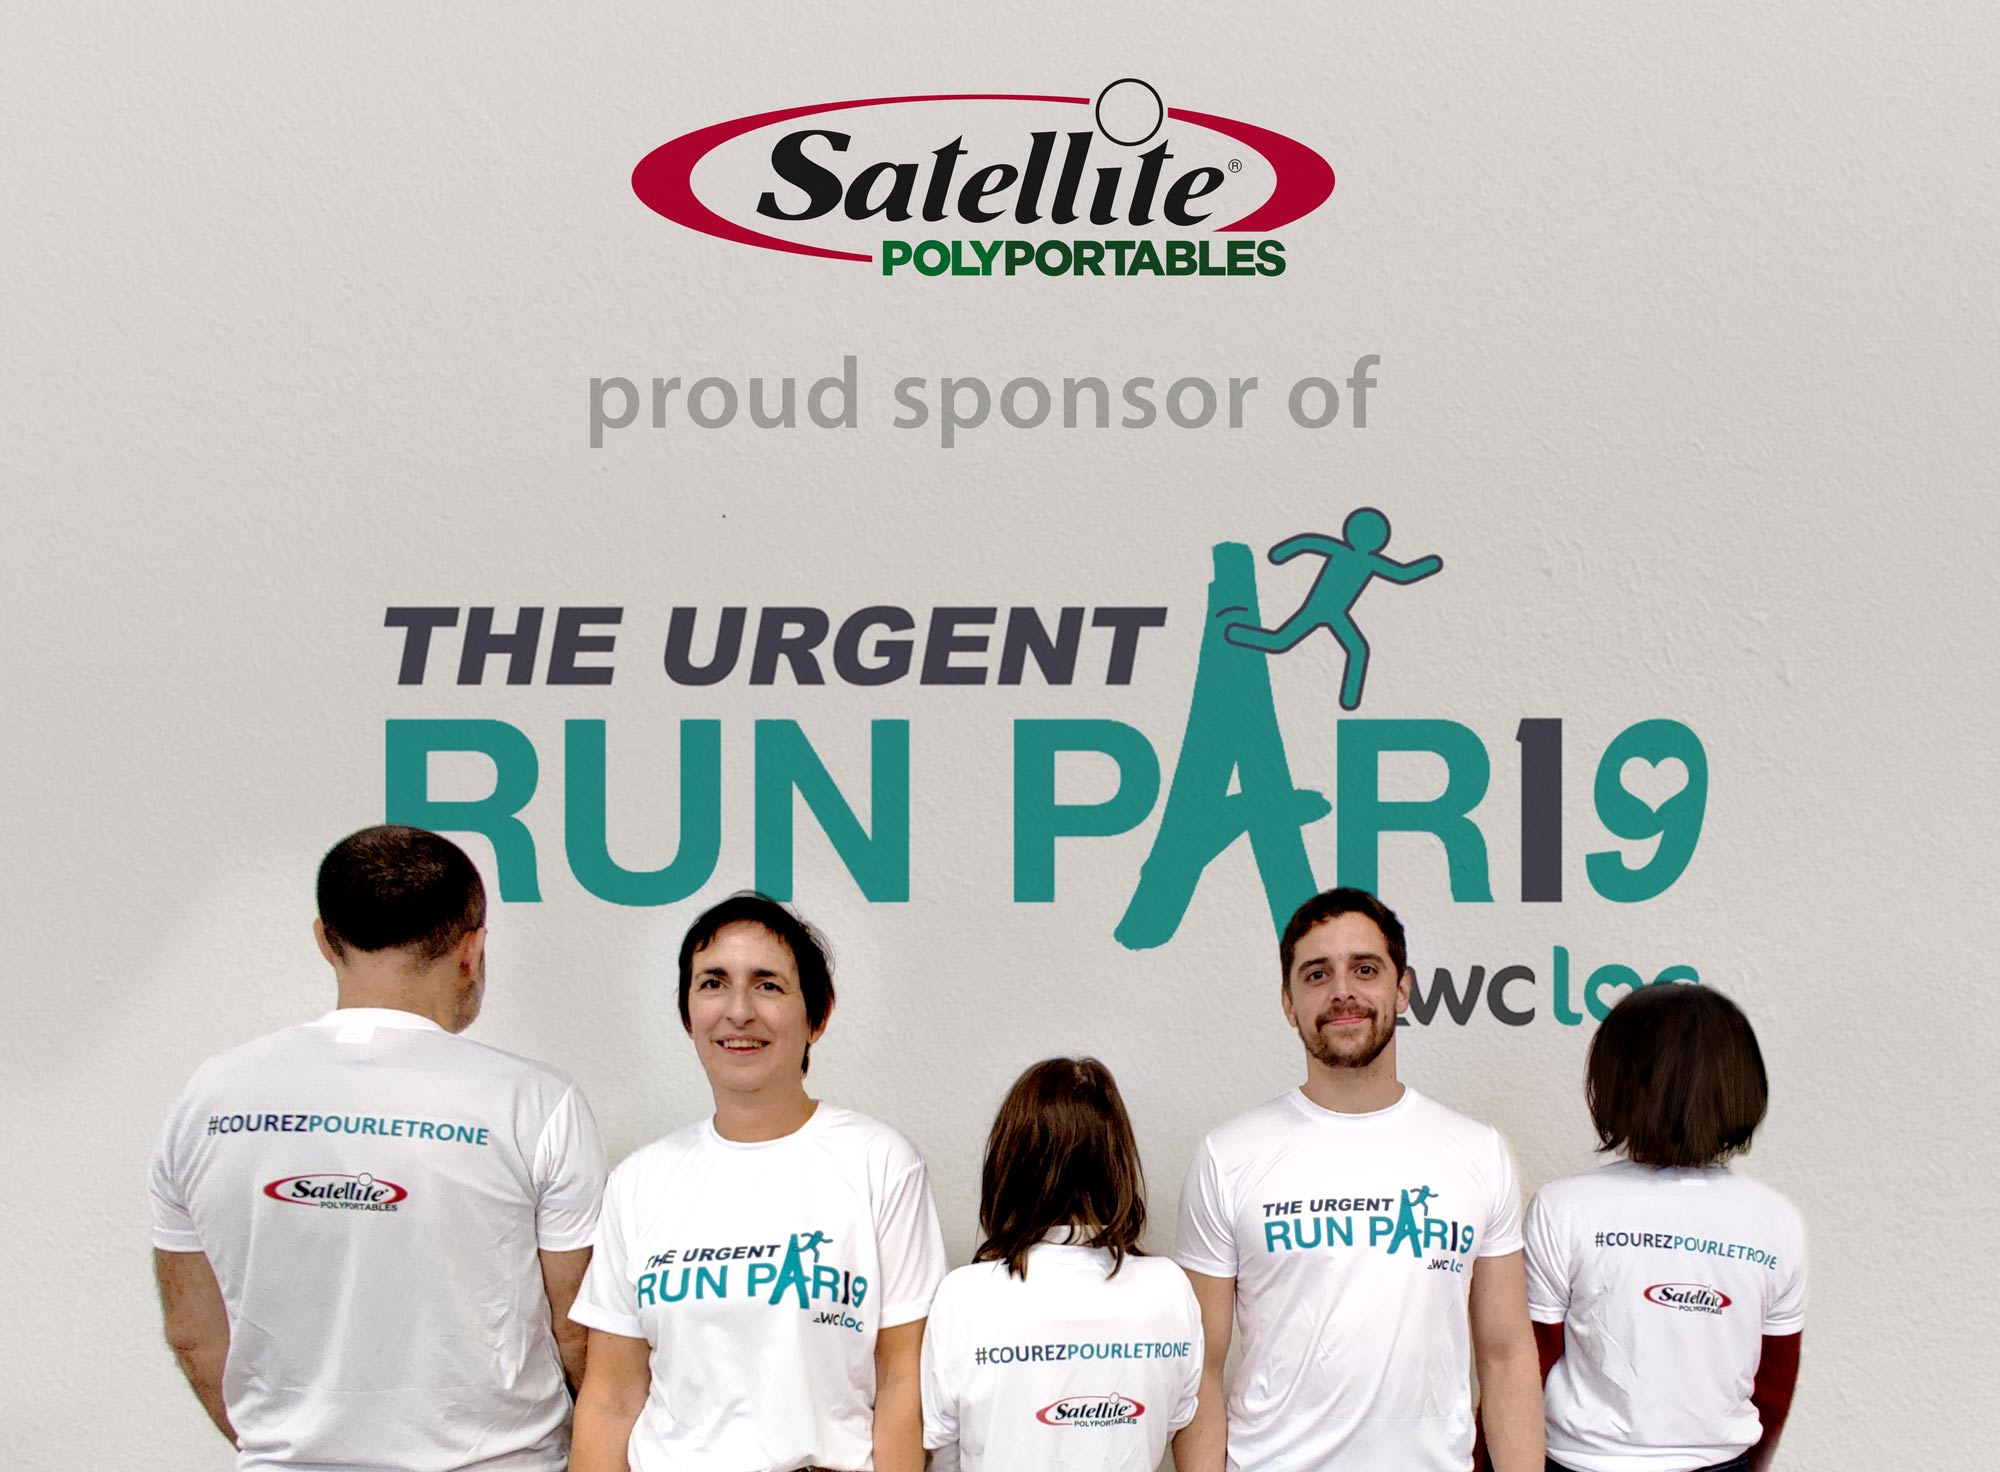 The Urgent Run Team